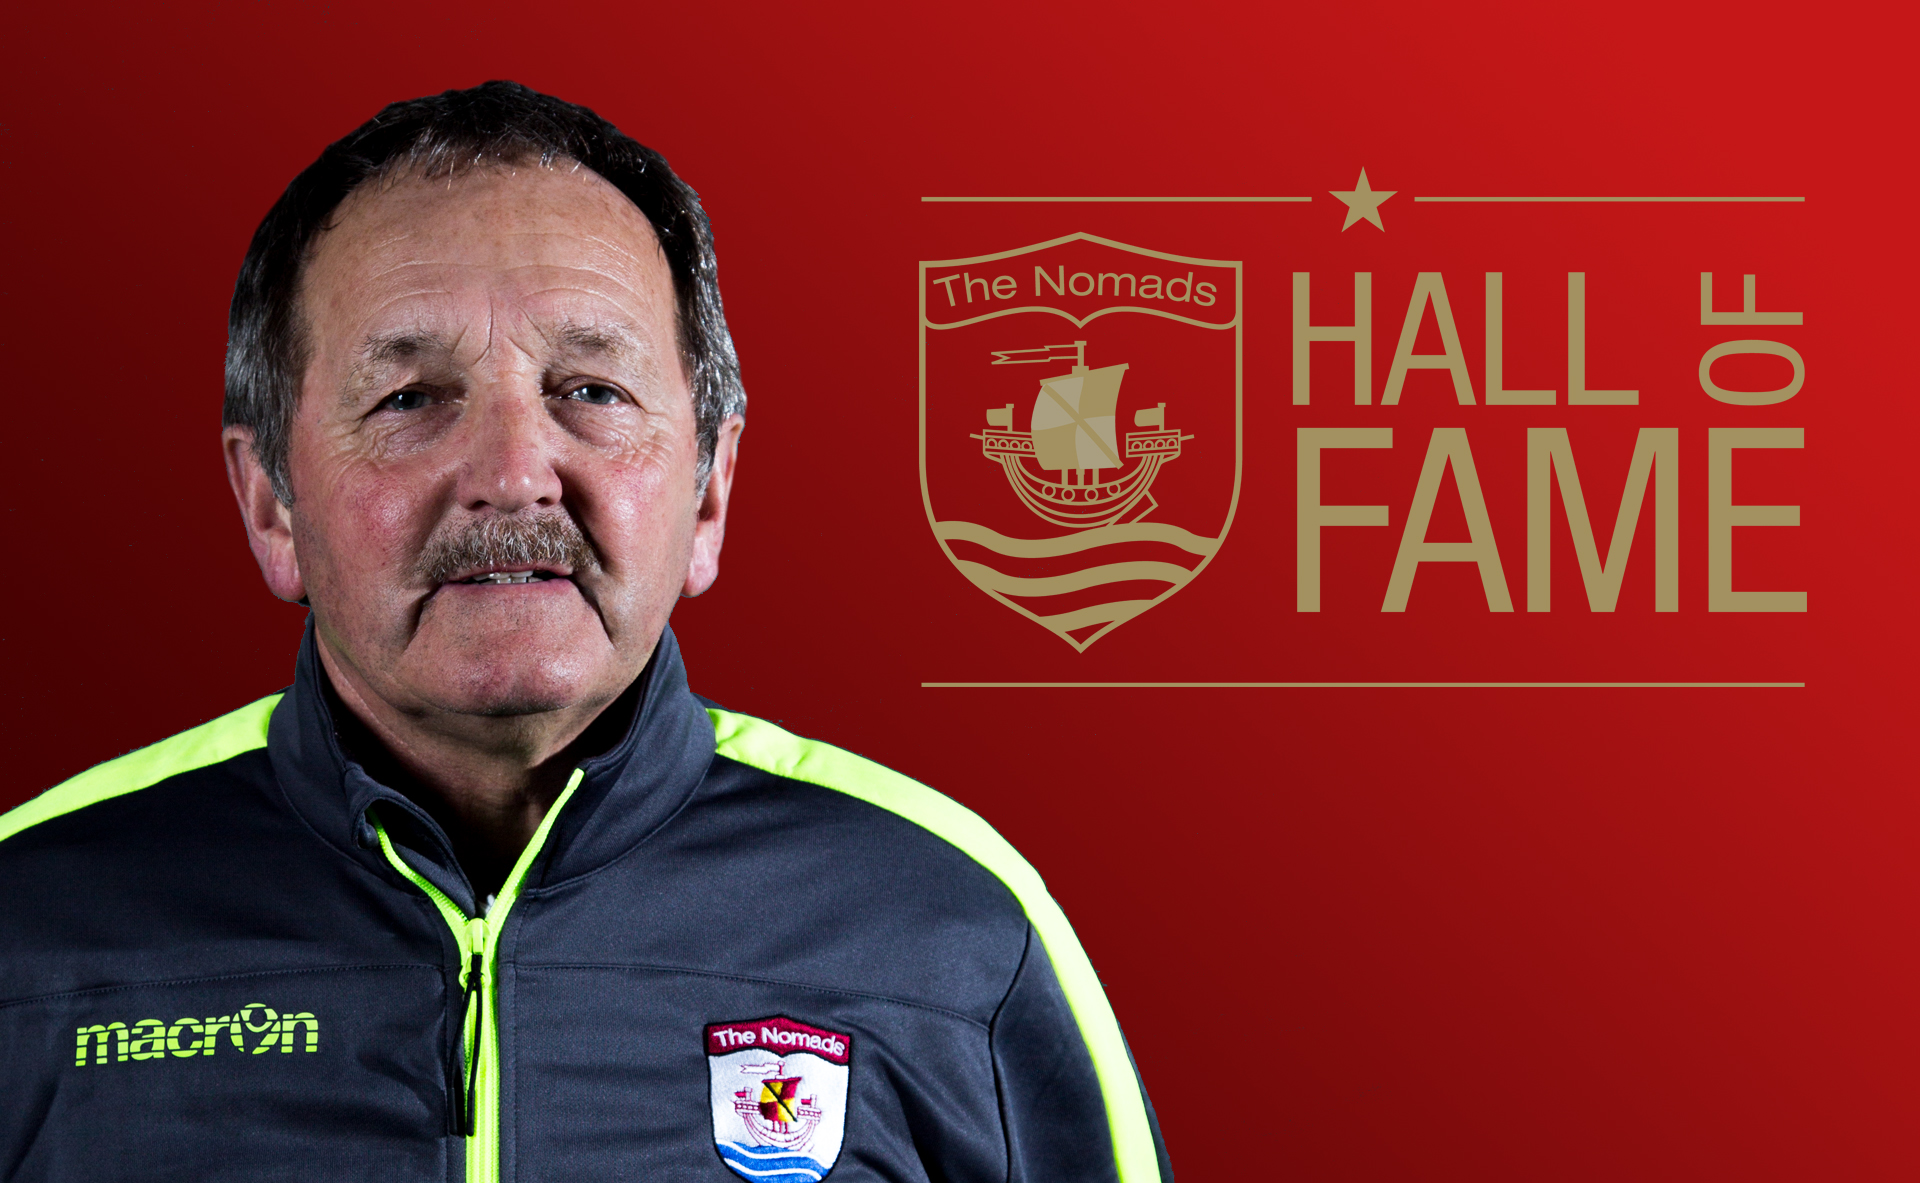 Latter to join Nomads Hall of Fame